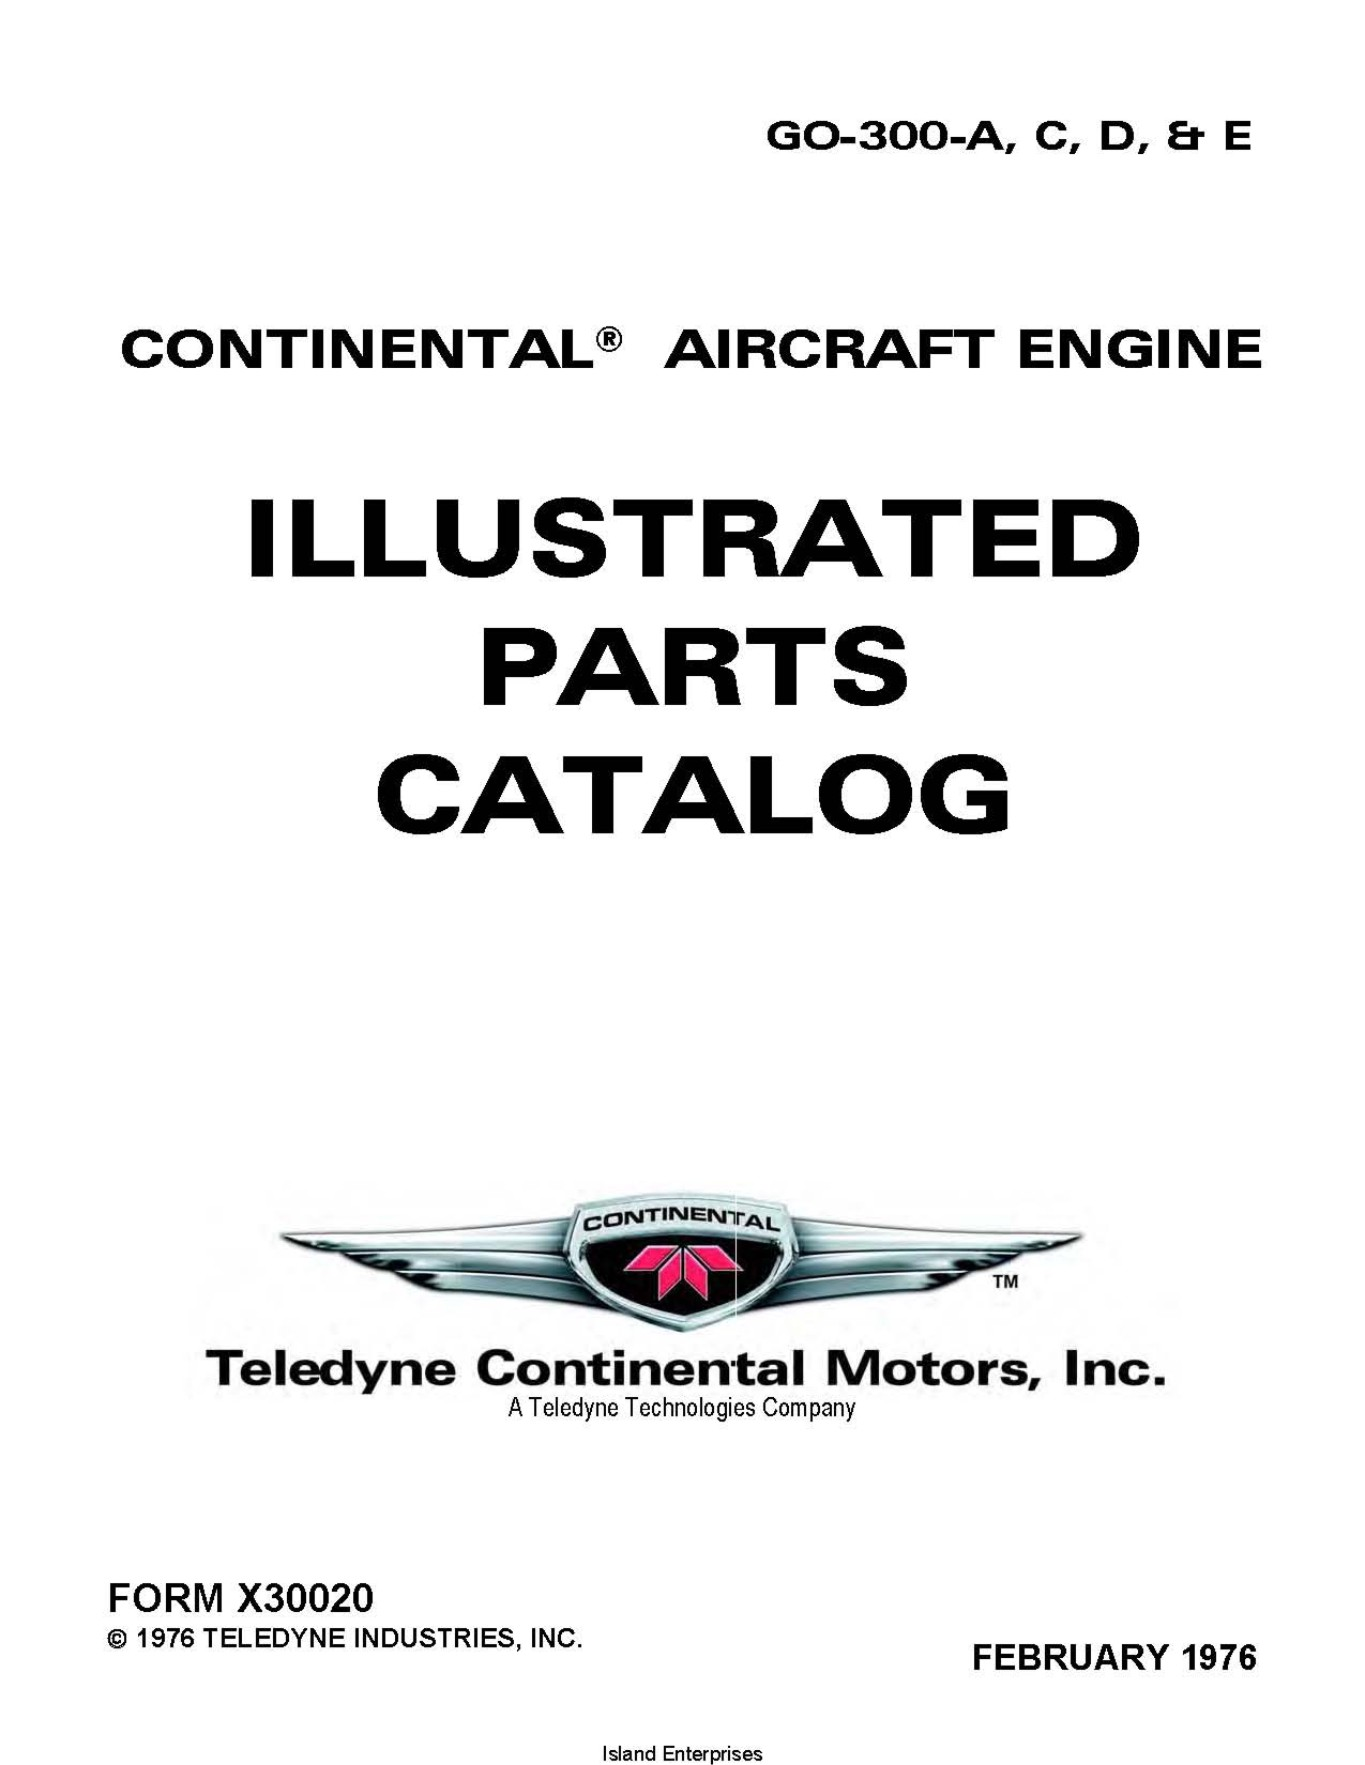 Continental GO-300-A, C, D, & E Series Aircraft Engines